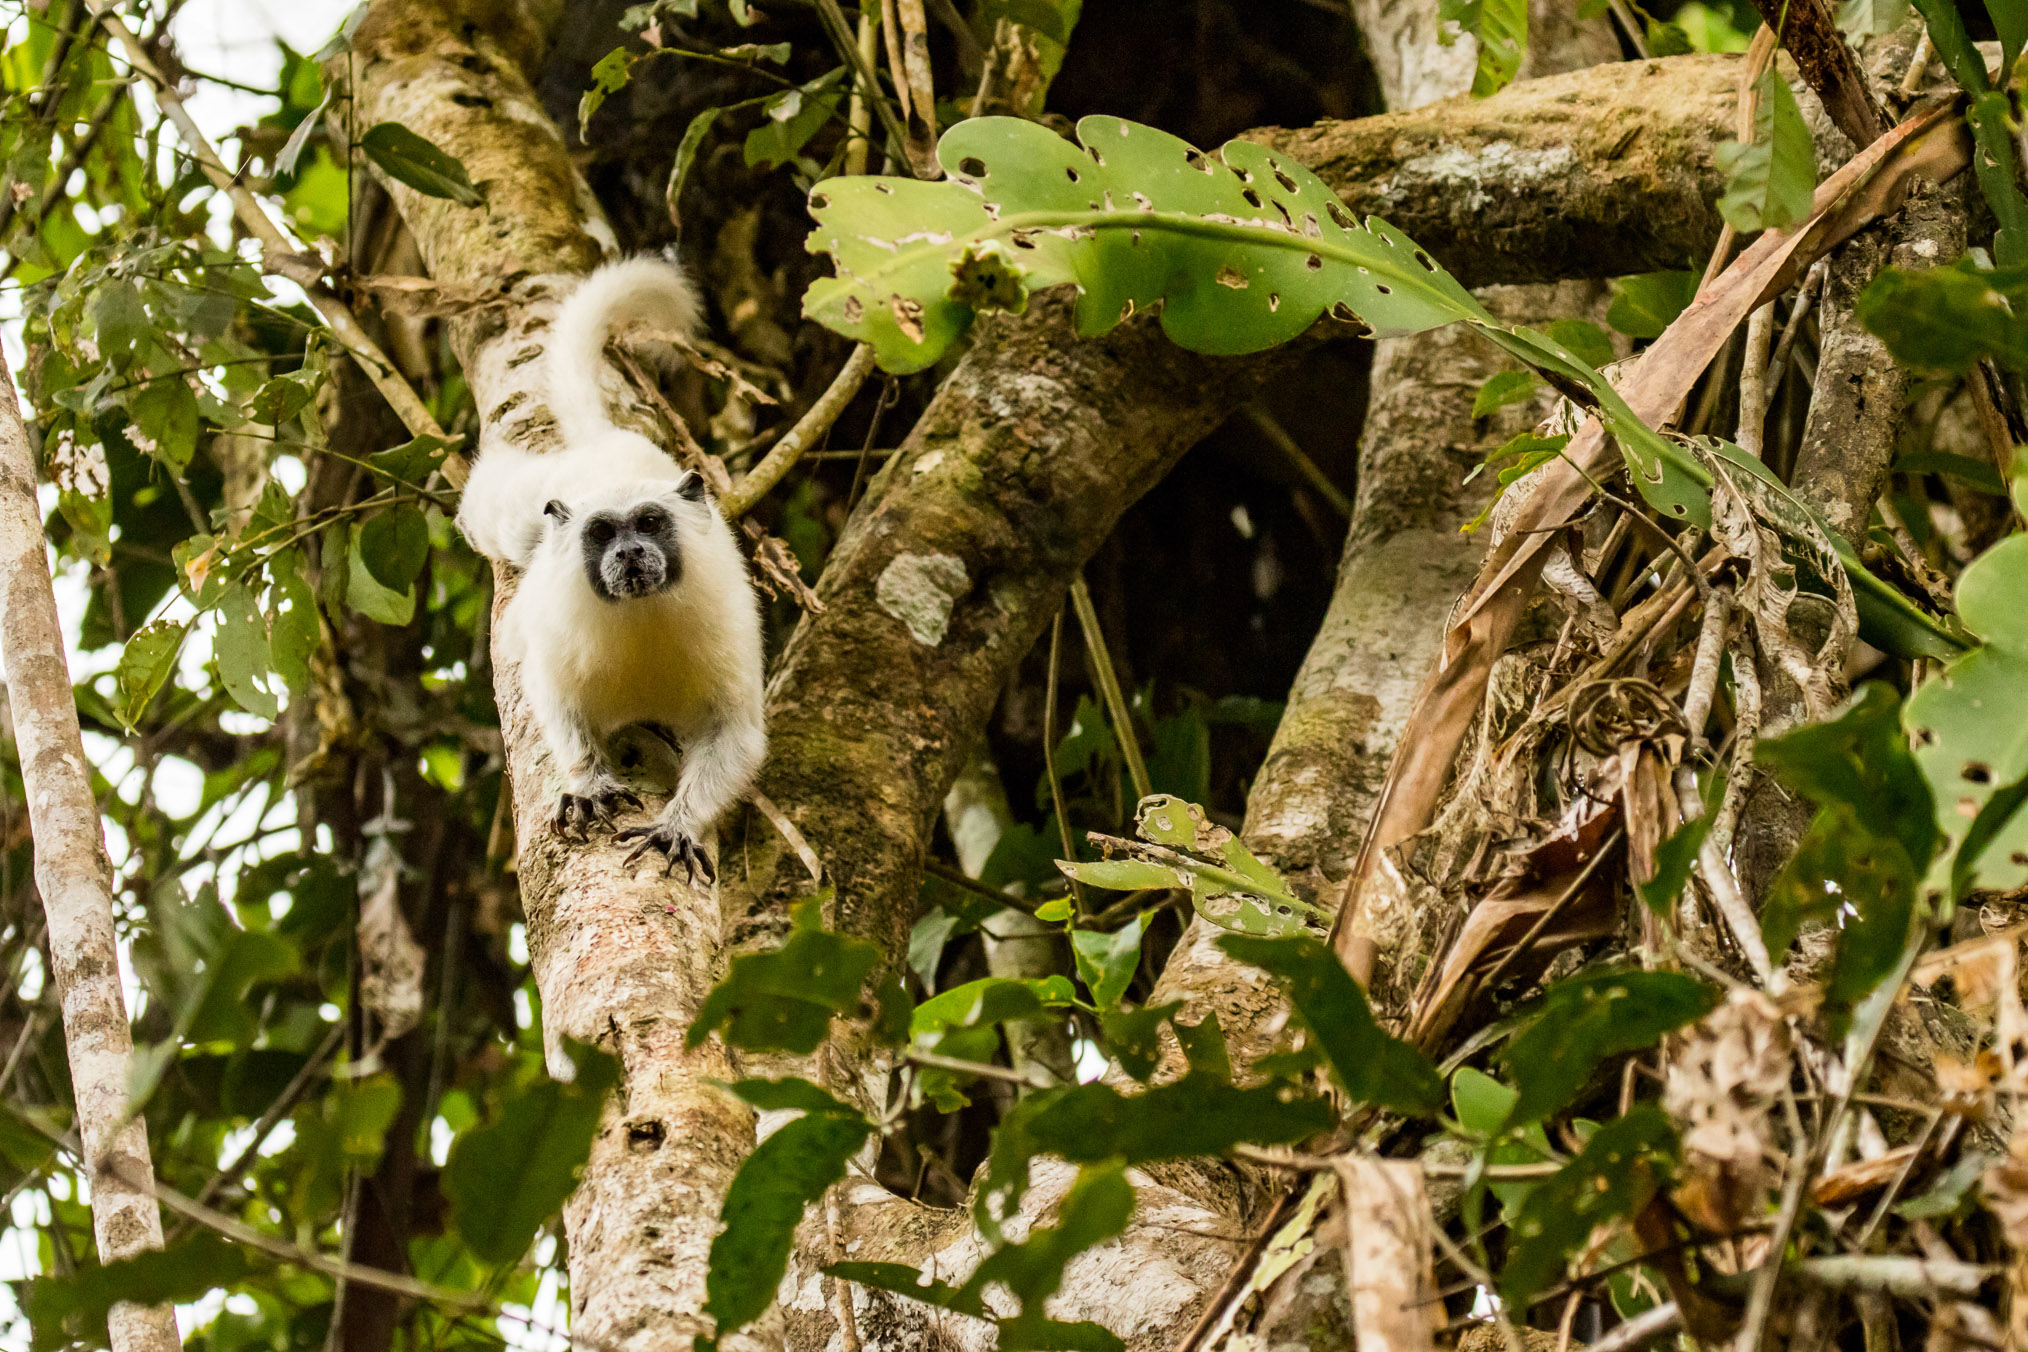 Small rainforest primates, such as this white tamarin (Leontocebus weddelli melanoleucus) are not hunted by locals and are still abundant in the Juruá watershed.